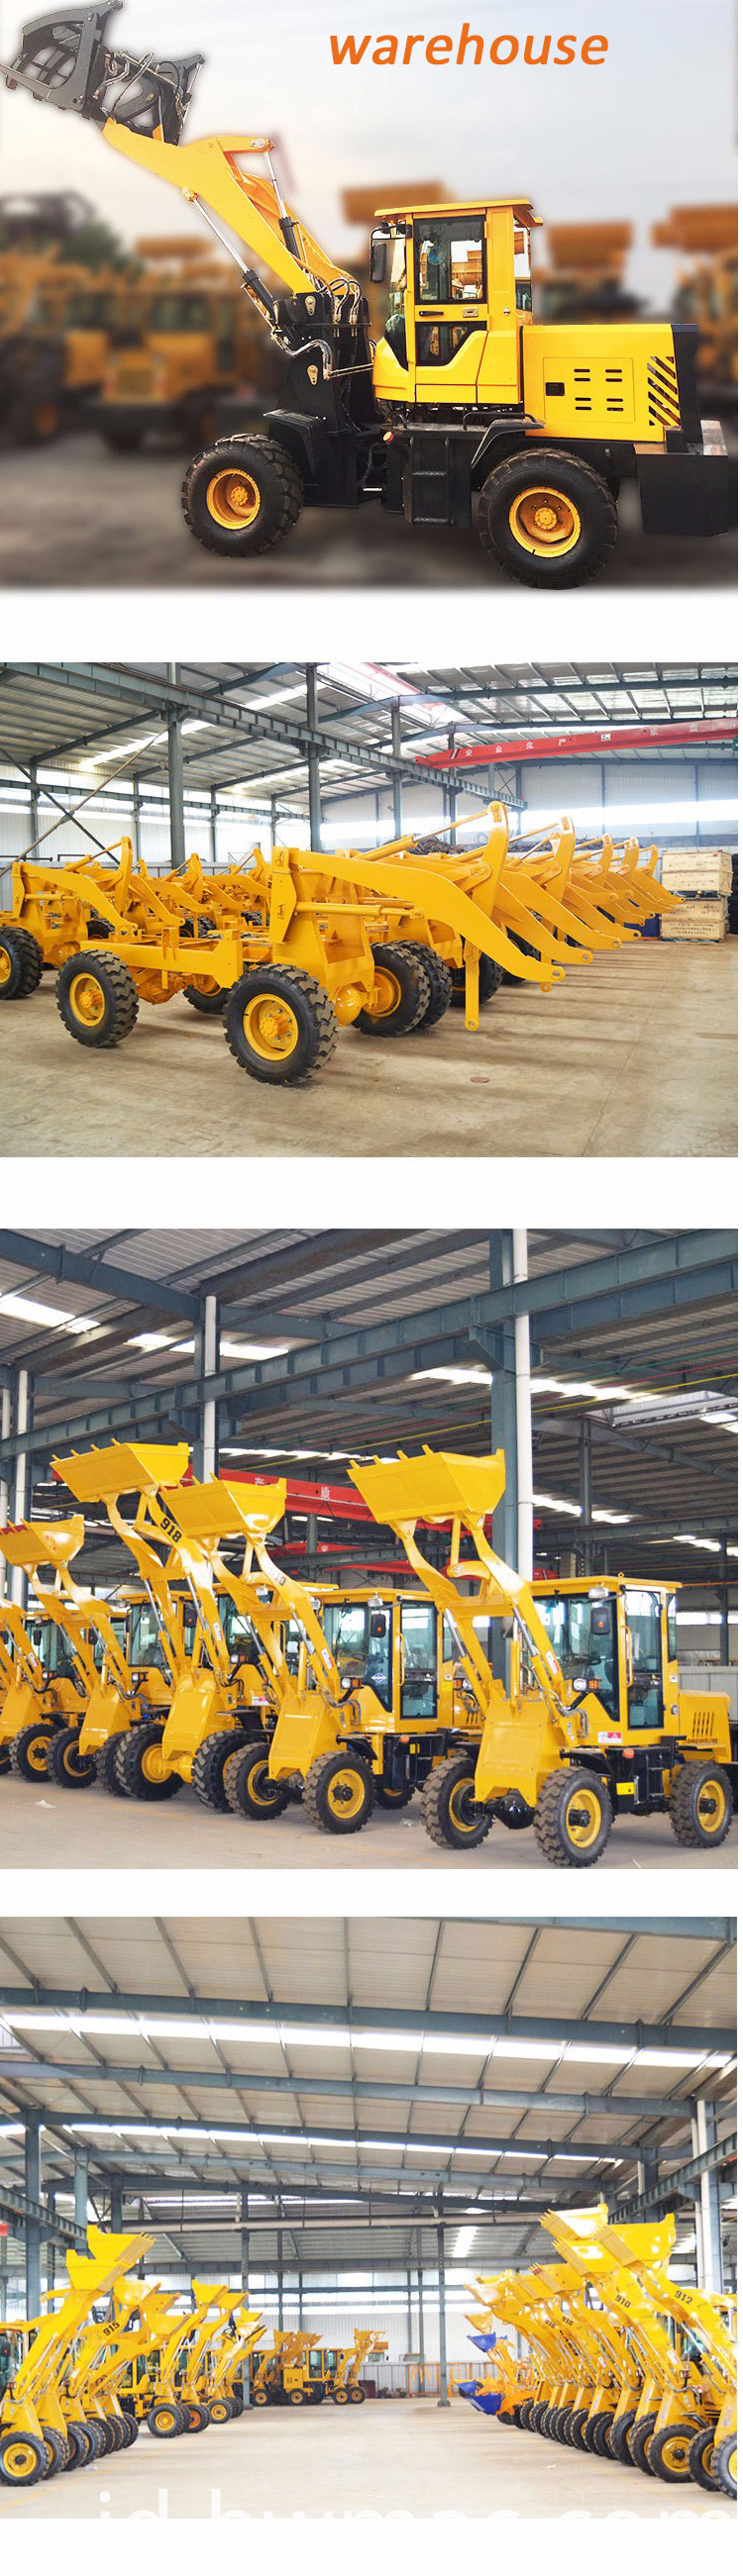 wheel loader ware house